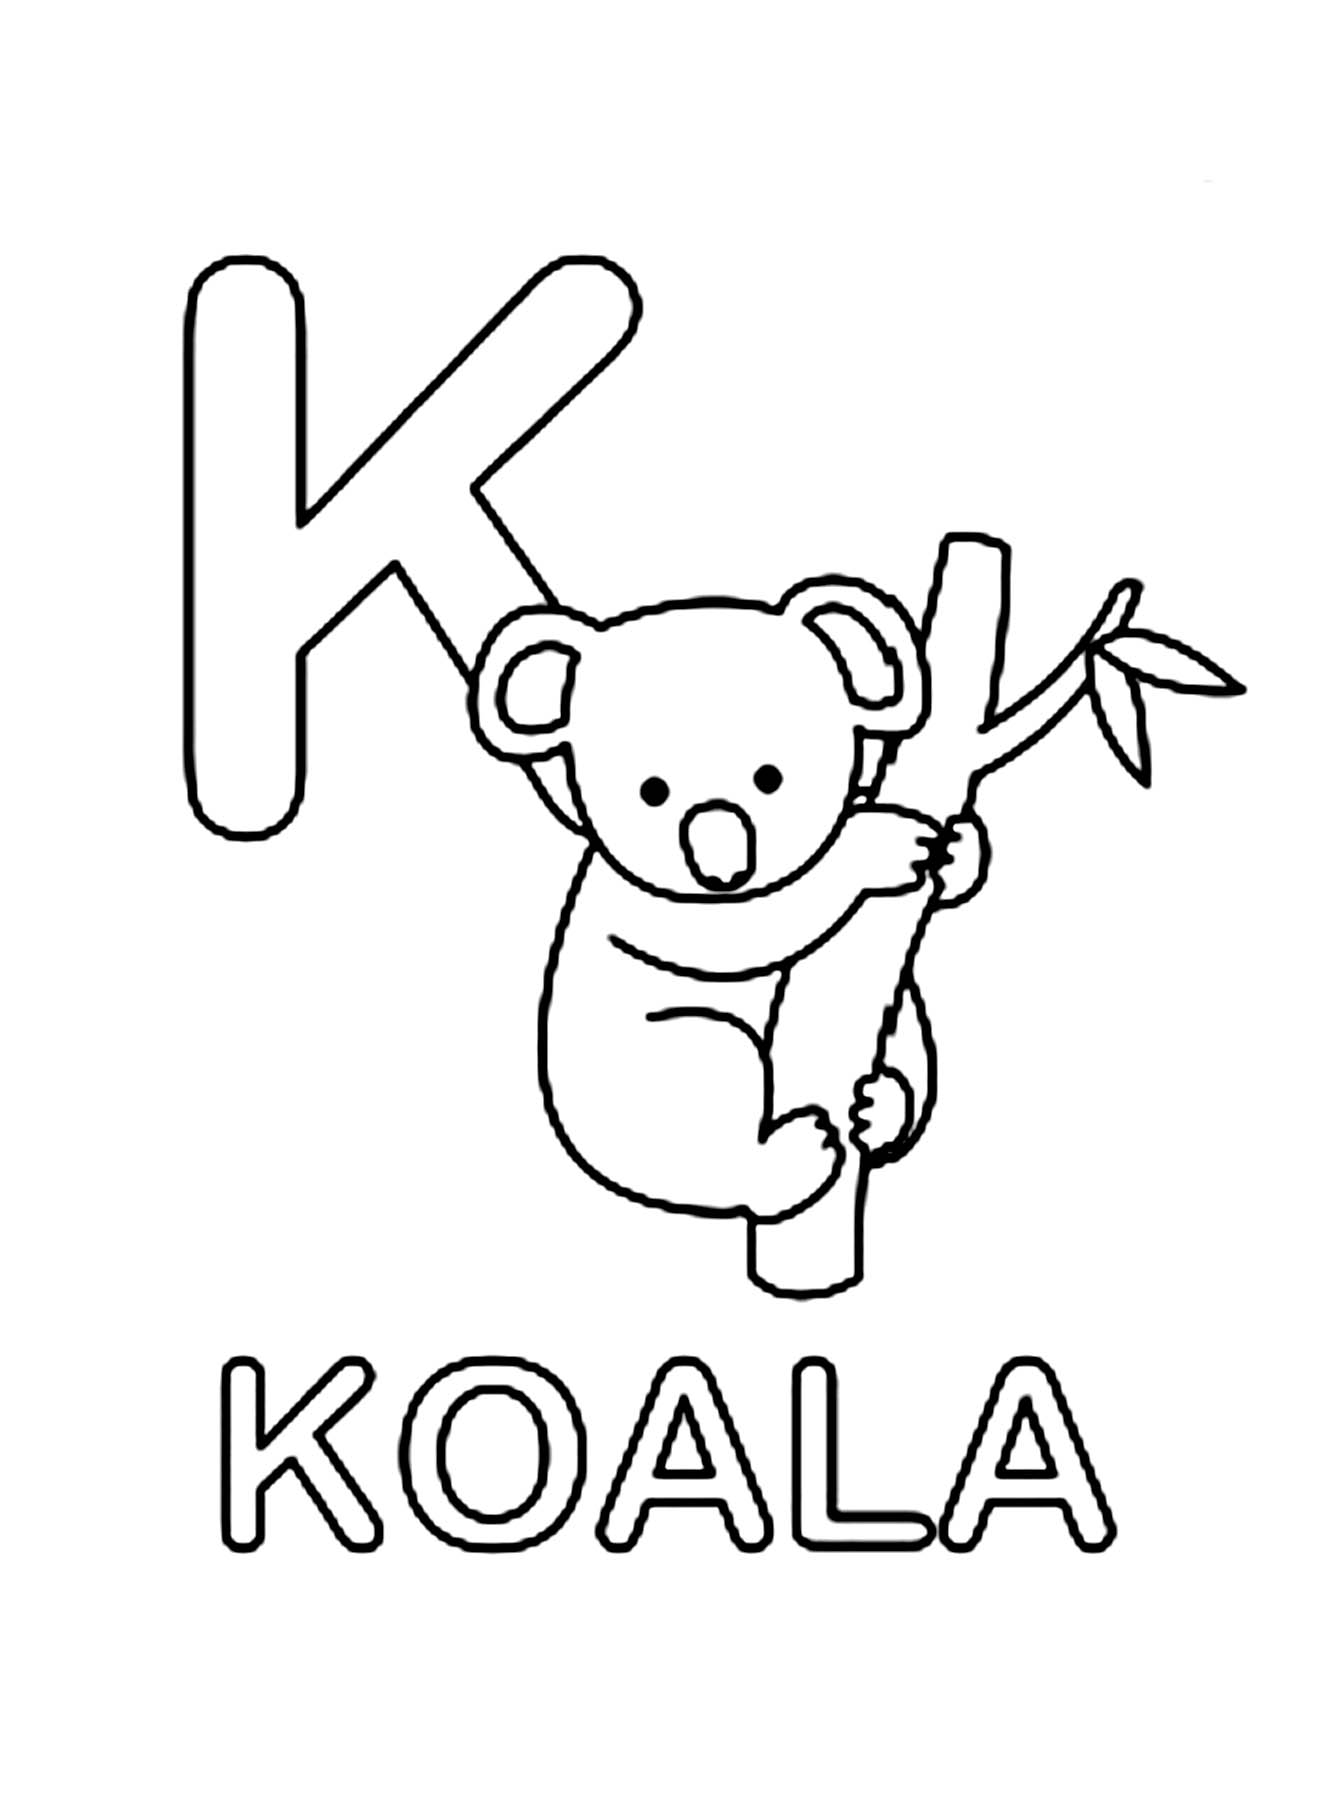 Printable Koala Coloring Pages